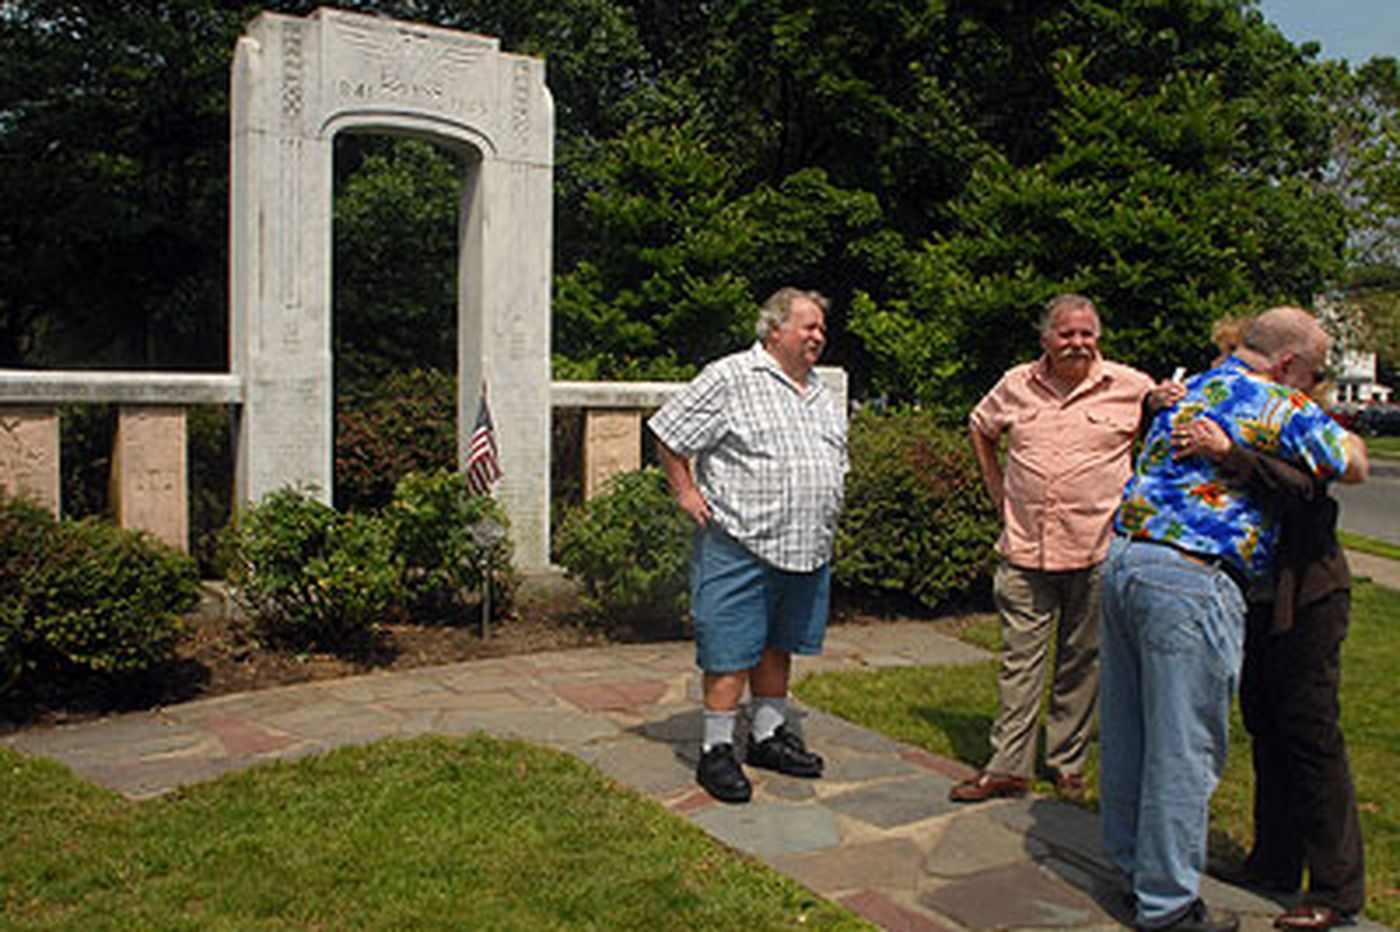 Kevin Riordan: A shared sense of duty finds WWII crash, and widow it left